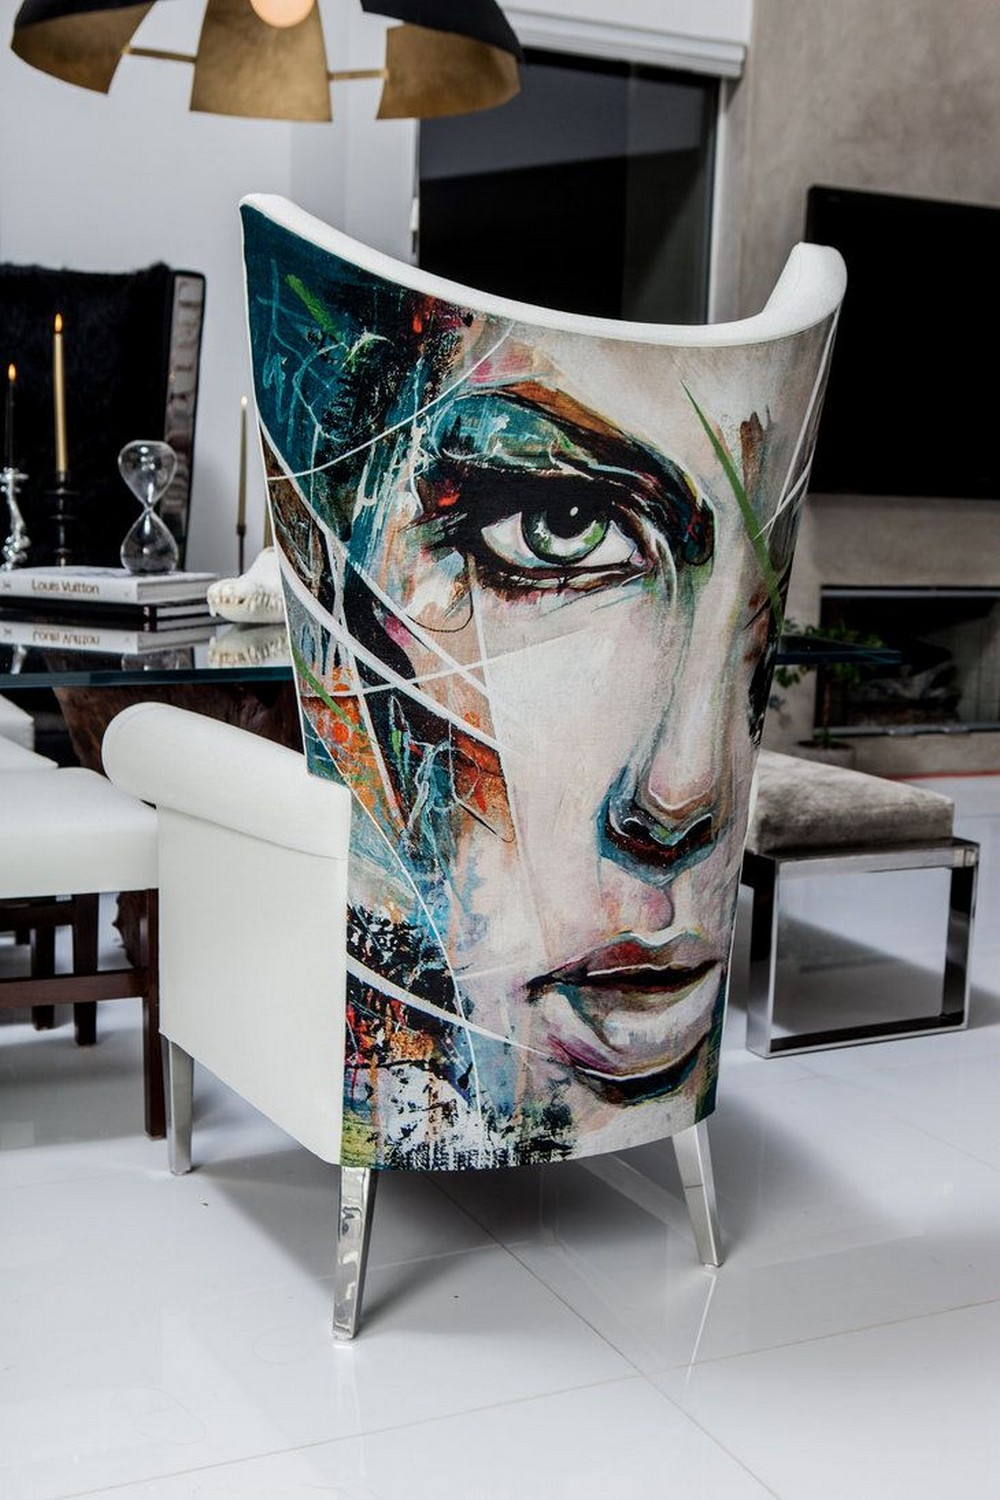 grand designs live london See 10 amazing furniture brands to see at Grand Designs Live London TACHINI Painted Artwork Tables1